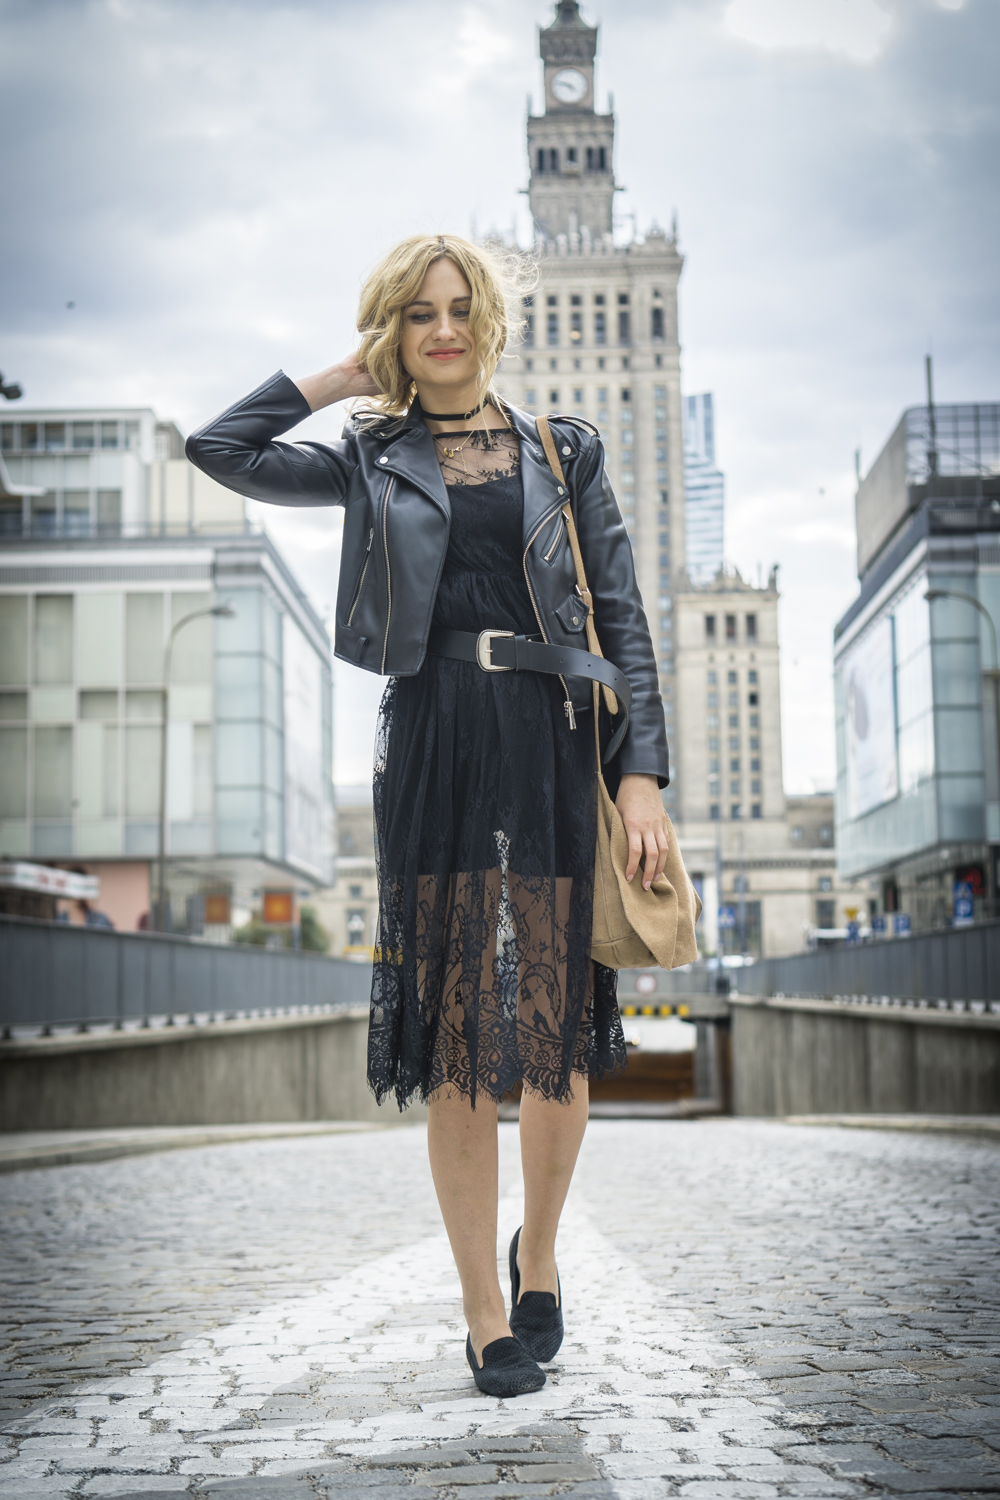 black lace dress casual chic street style fashion blonde tumblr girl look it girl lookbook ootd outfit